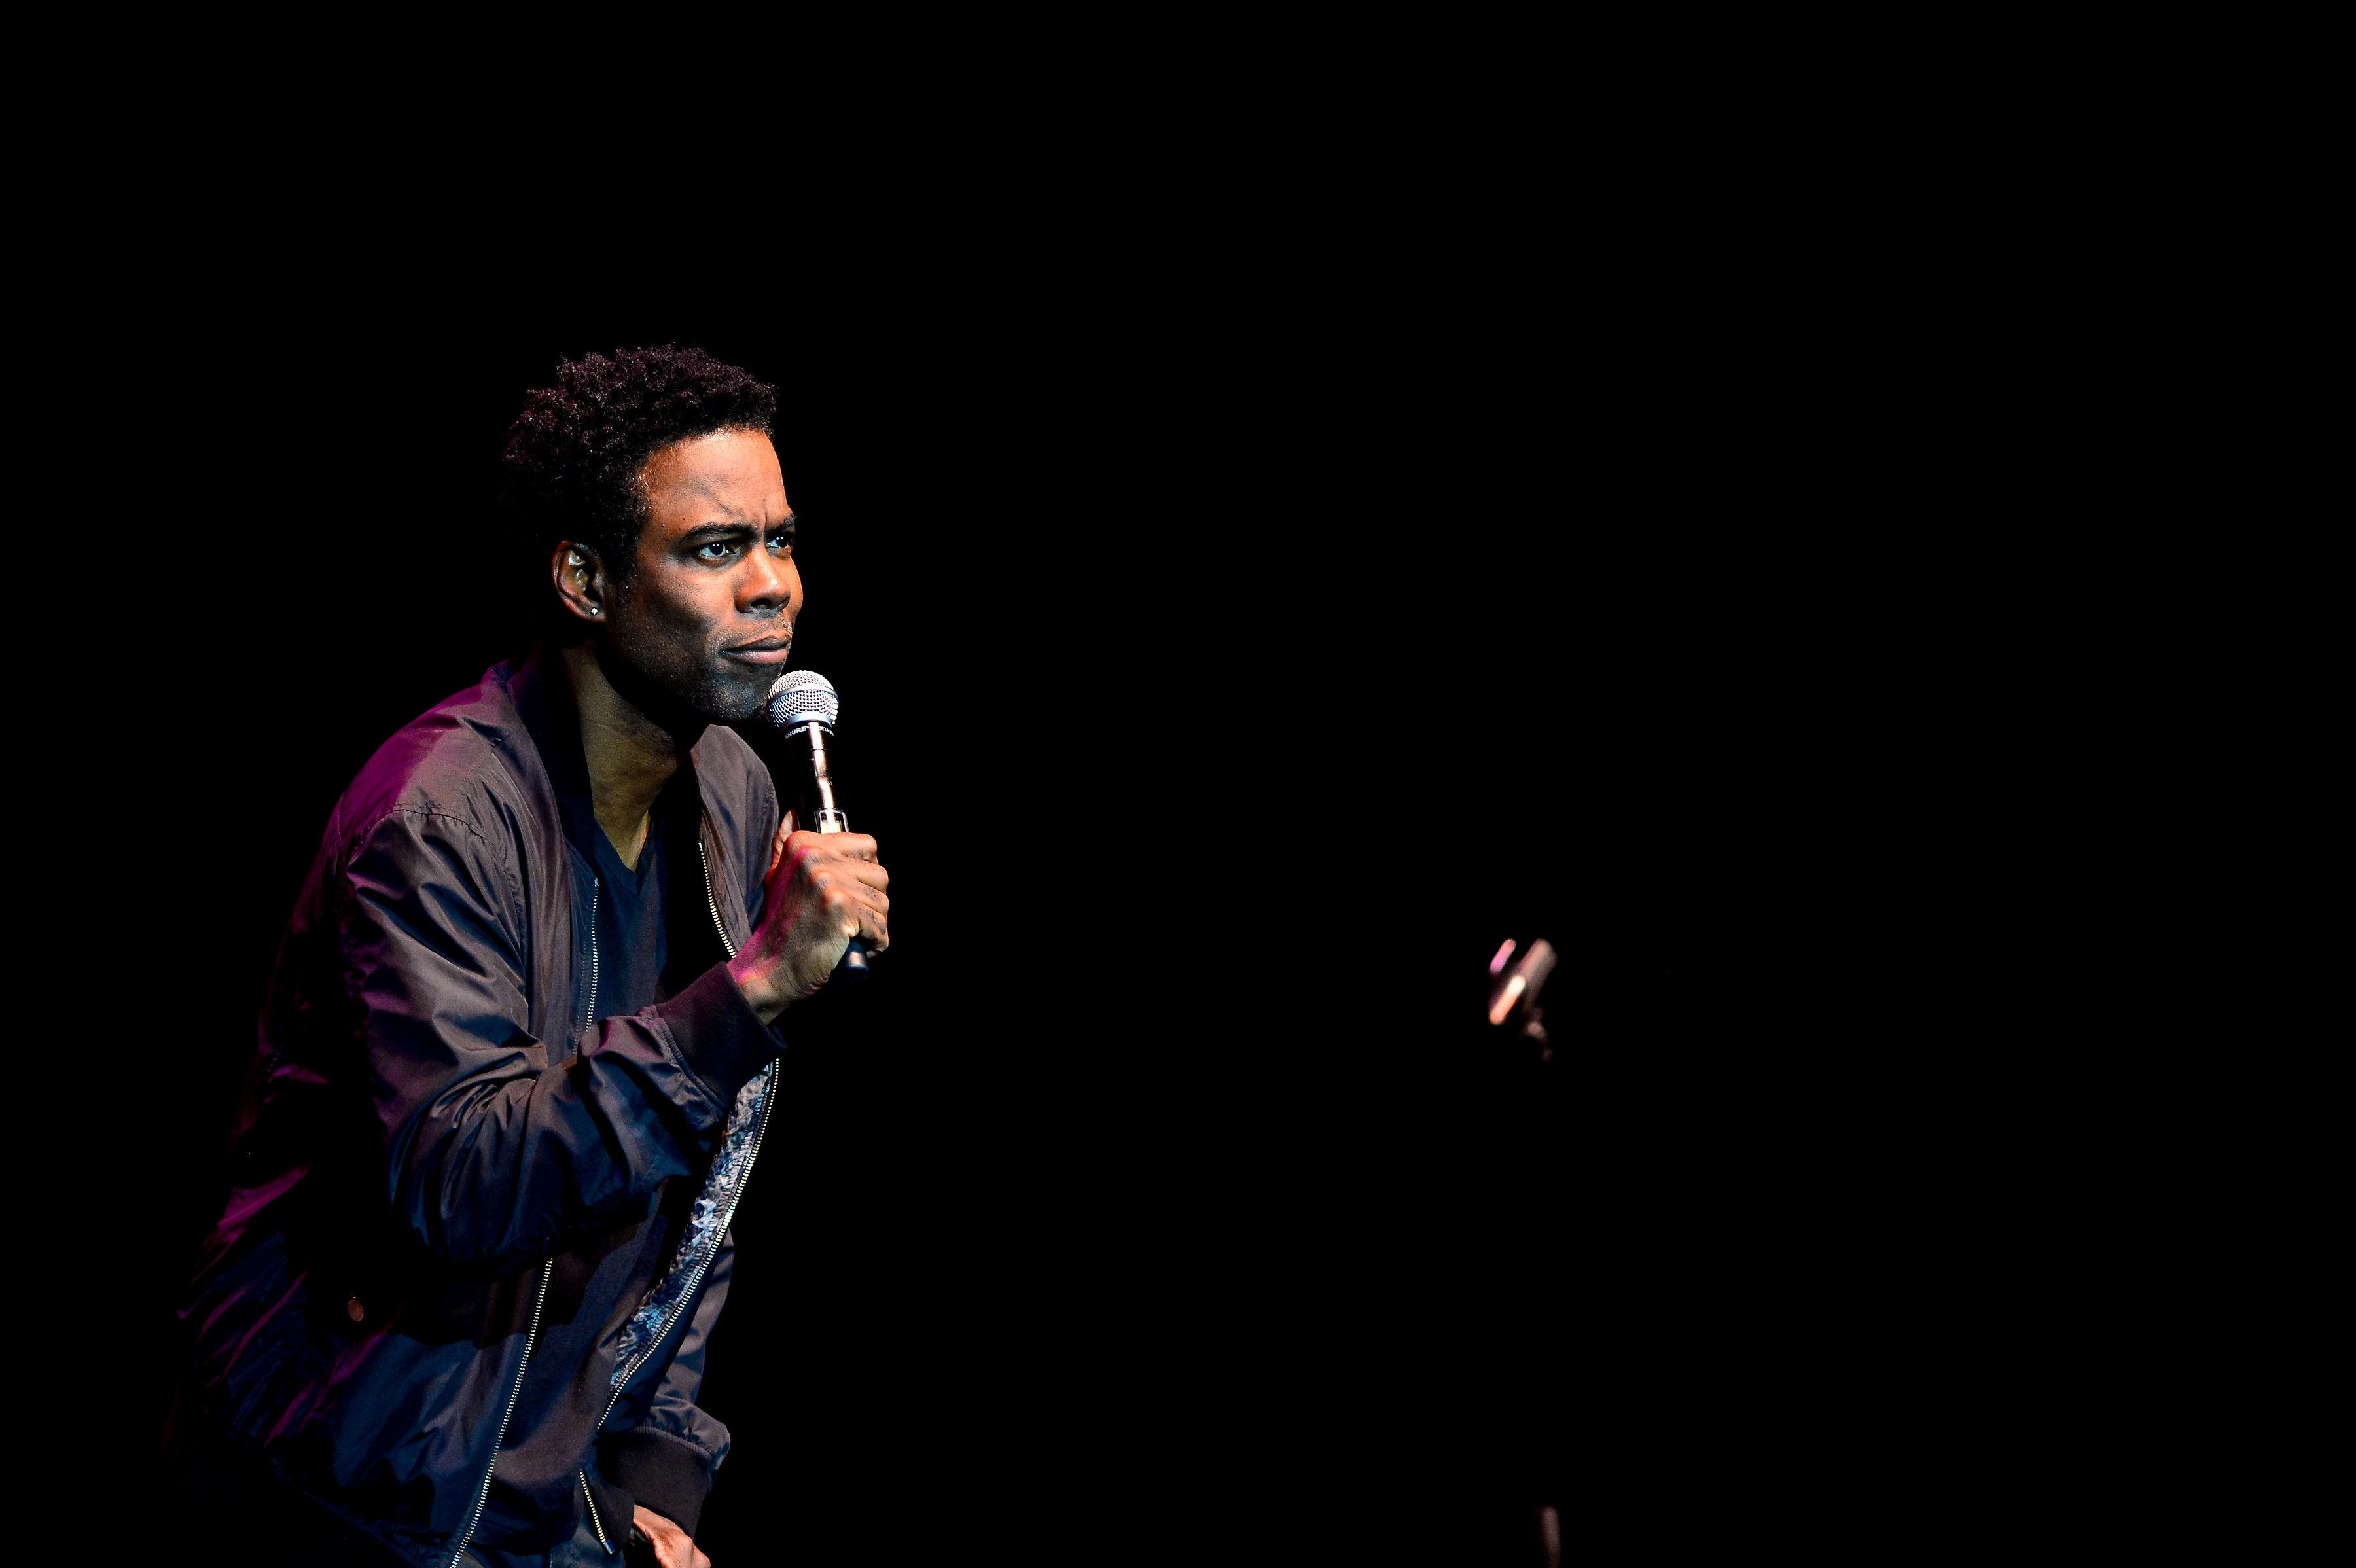 HOLLYWOOD, FL - MARCH 29:  Chris Rock preforms at Hard Rock Live at Seminole Hard Rock Hotel & Casino  Hollywood on March 29, 2017 in Hollywood, Florida.  (Photo by Johnny Louis/FilmMagic)